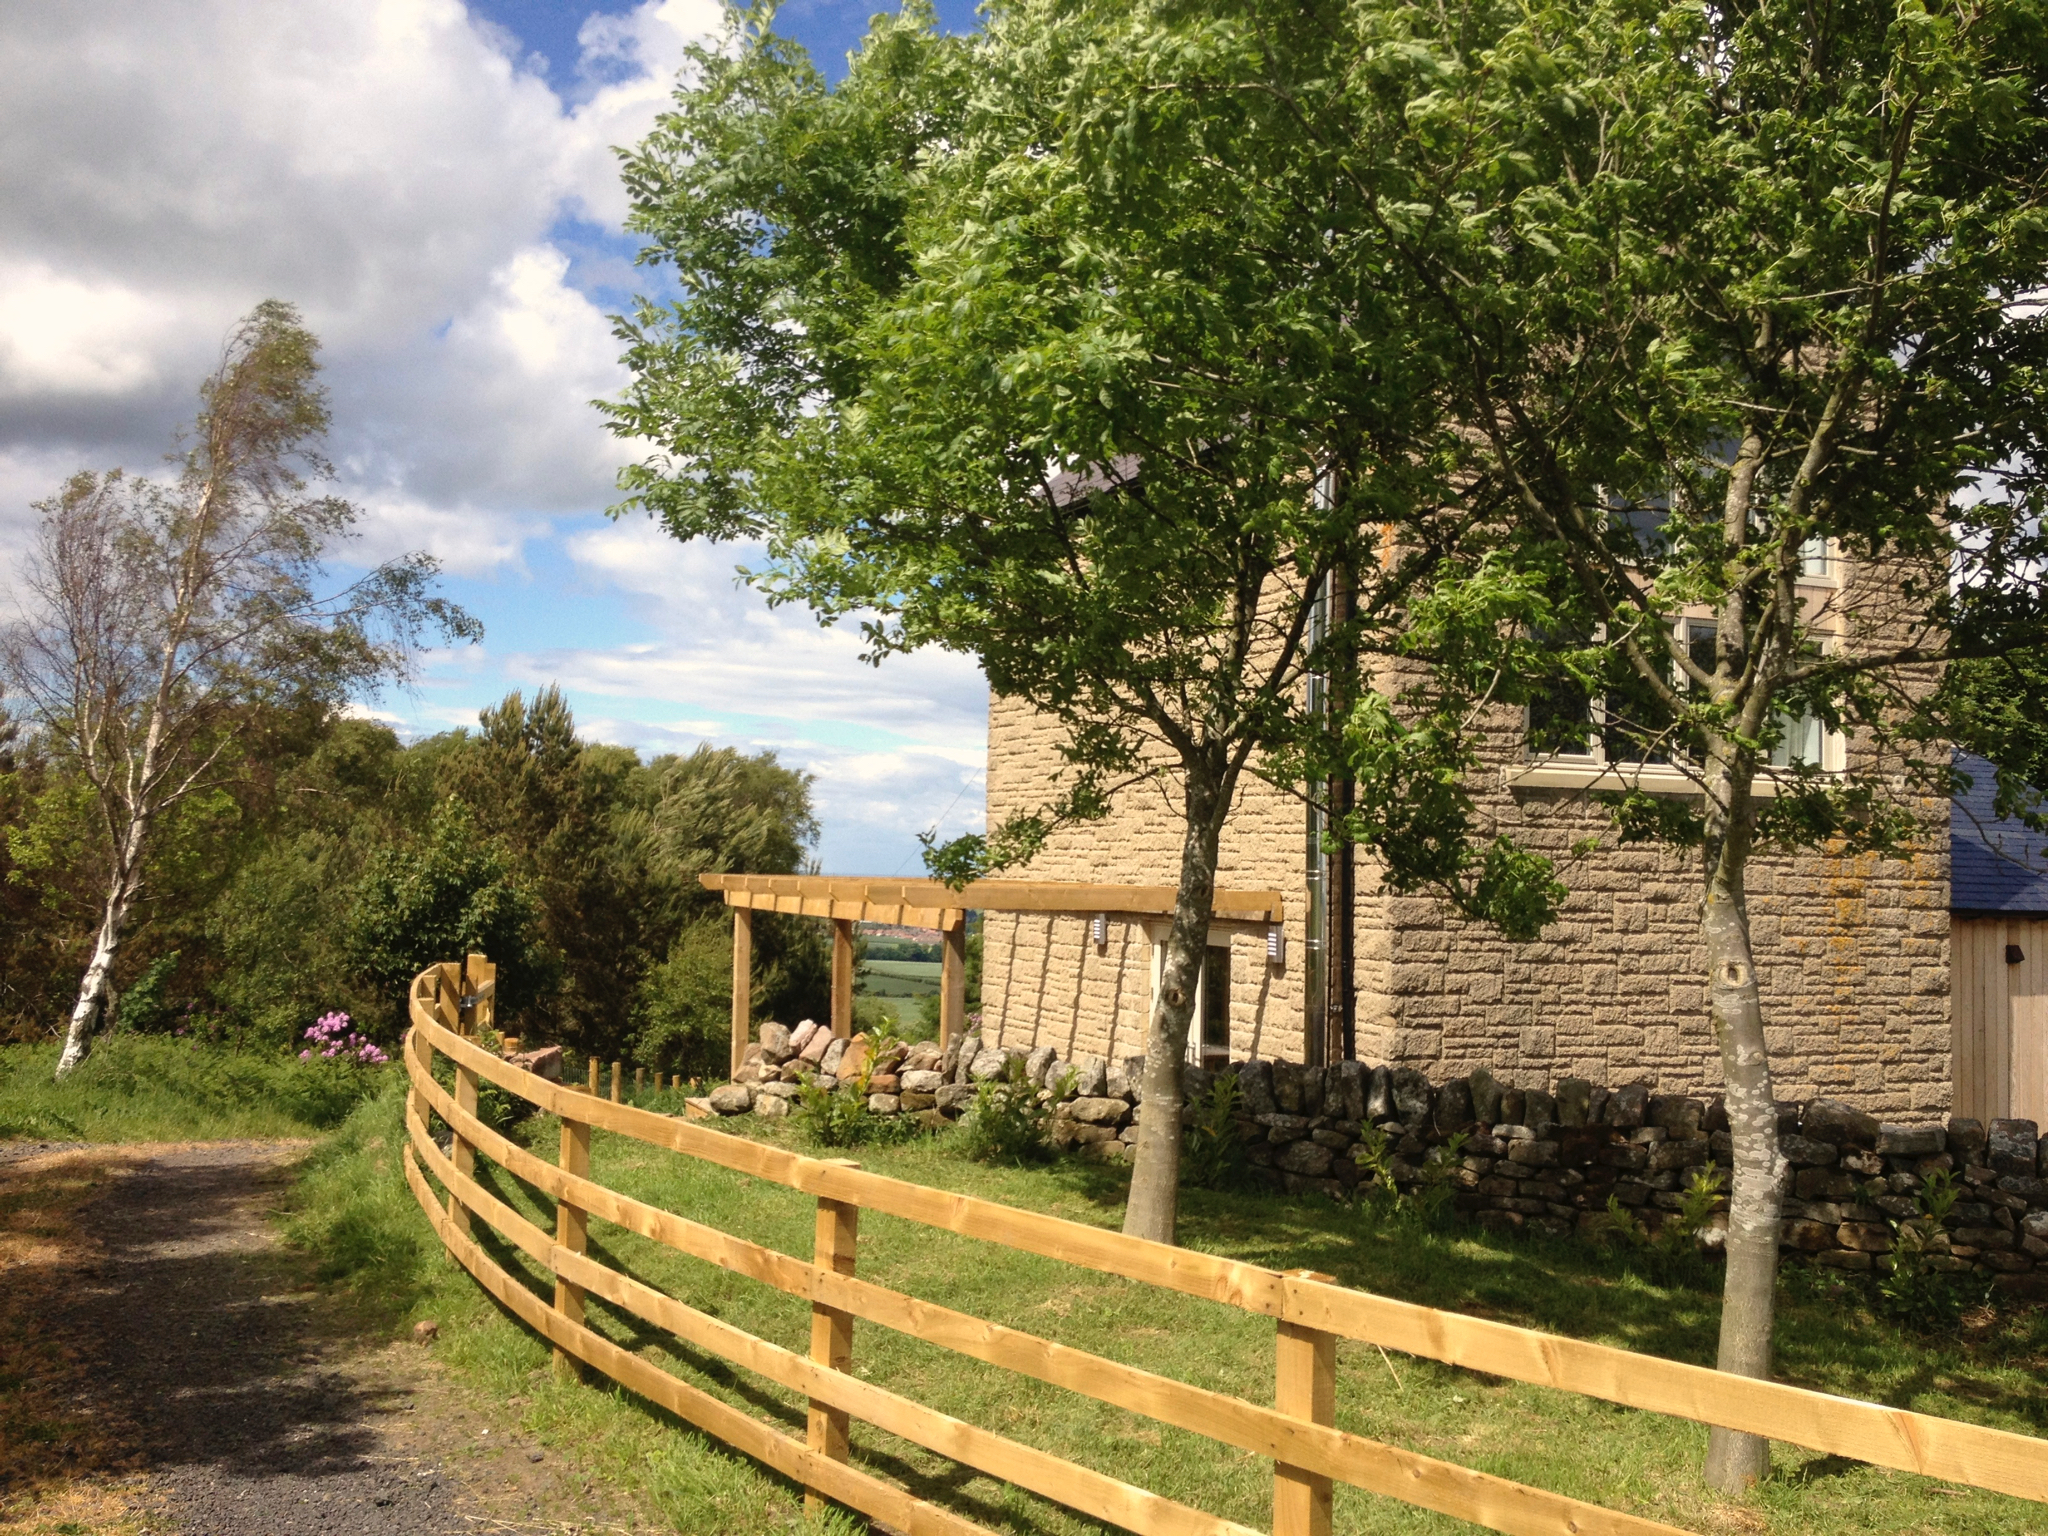 Bellshill Tower, Renner Cottages. Luxury holiday cottages in Northumberland UK, dog friendly, available for short breaks.